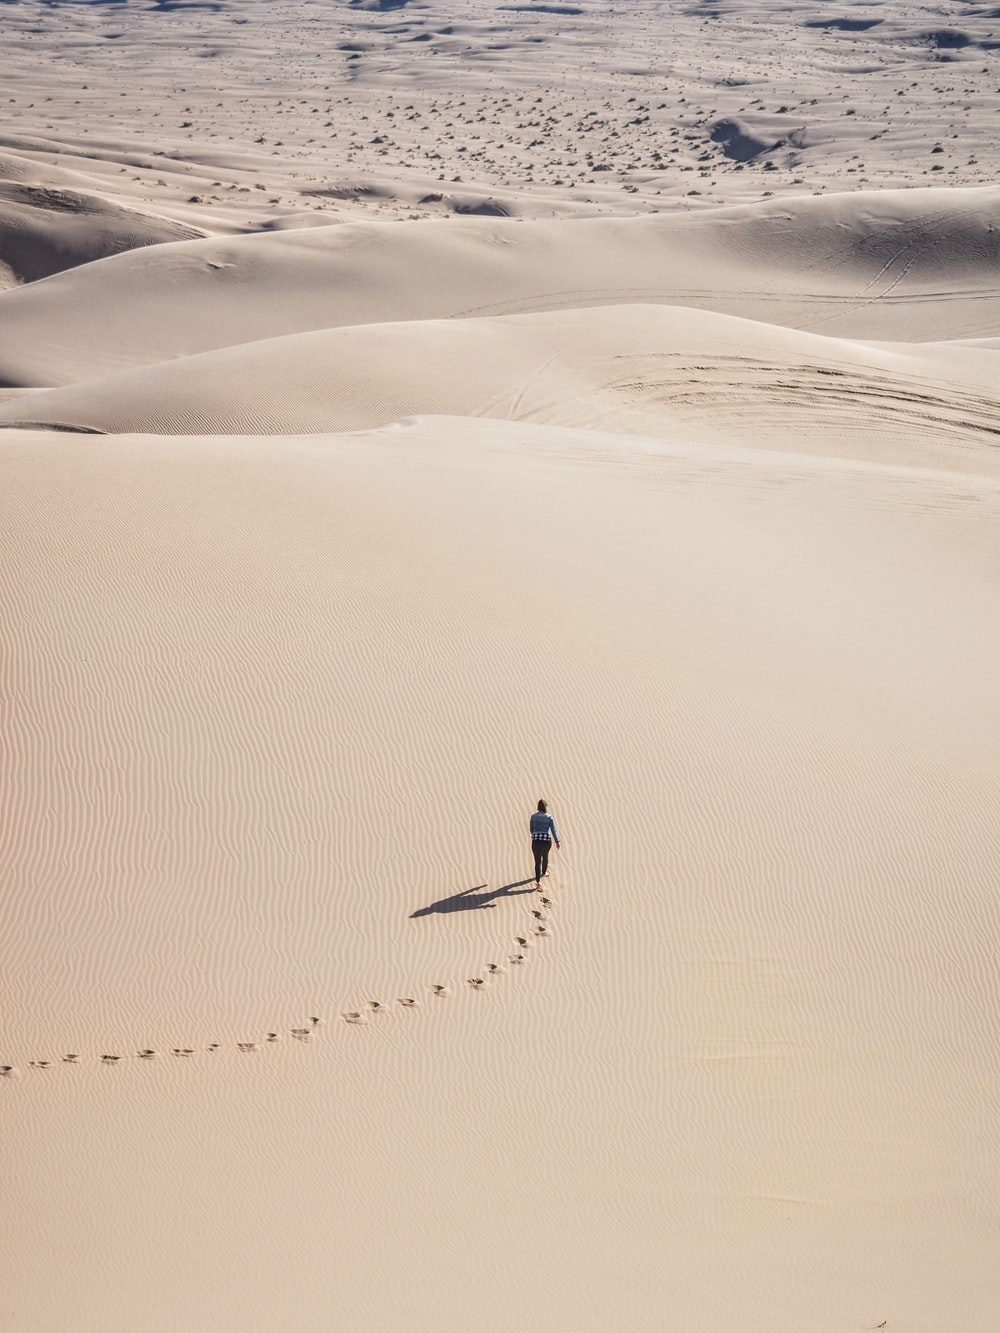 person walking on desert sand during daytime